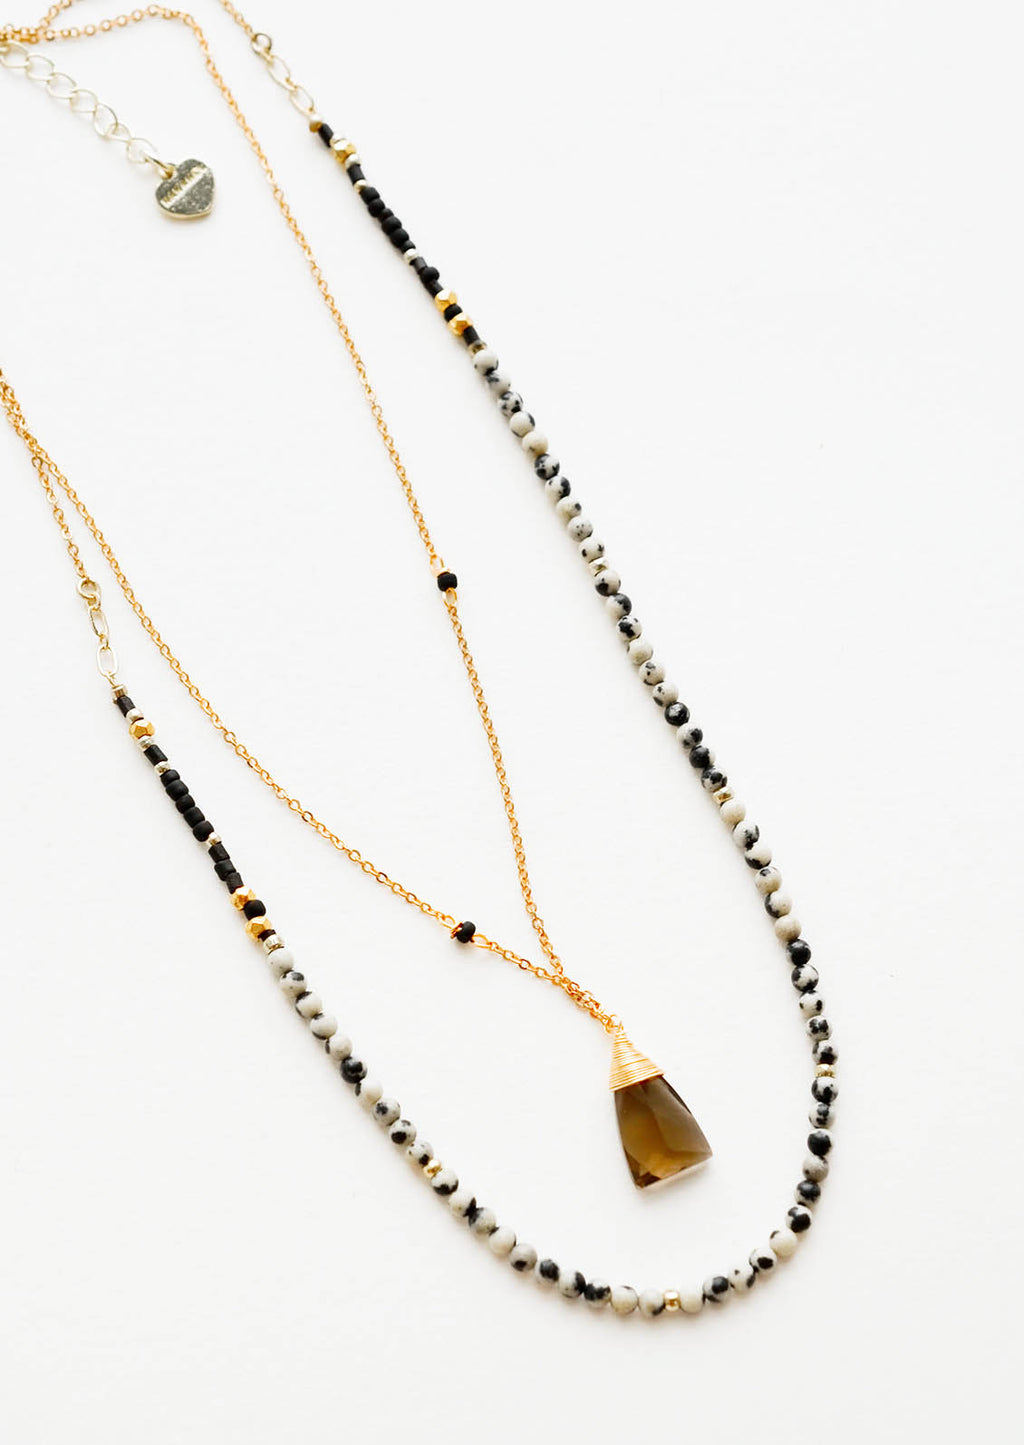 Dalmatian Jasper: A two-layer gold necklace with one strand of small, round cream and black stones and another of the thin gold chain and brown gemstone pendant.